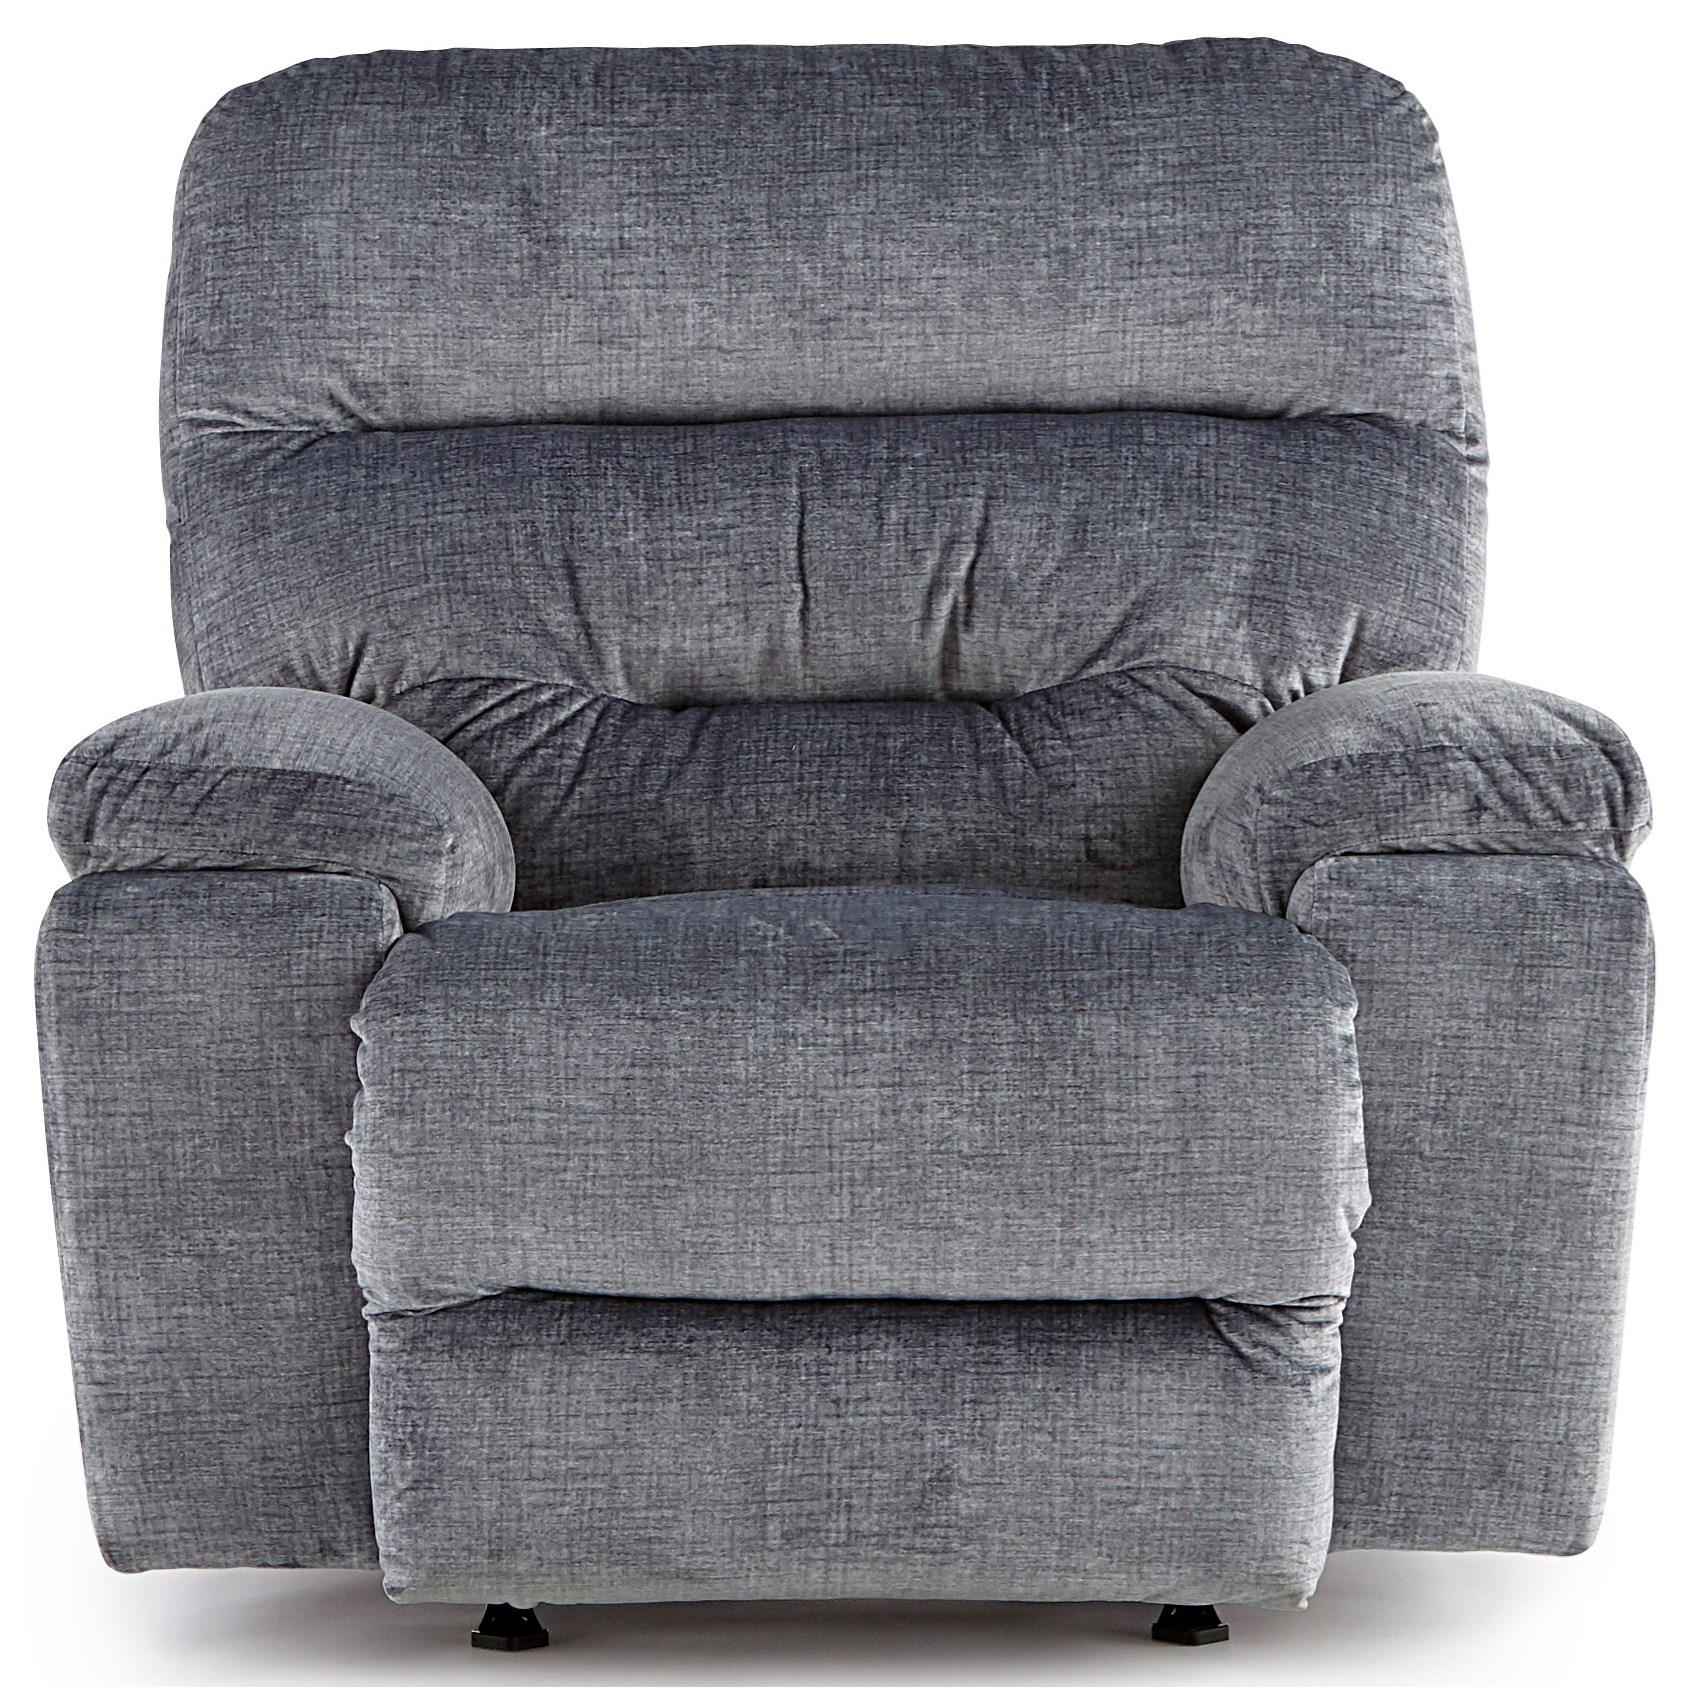 Ryson Power Headrest Swivel Glider Recliner by Best Home Furnishings at Baer's Furniture